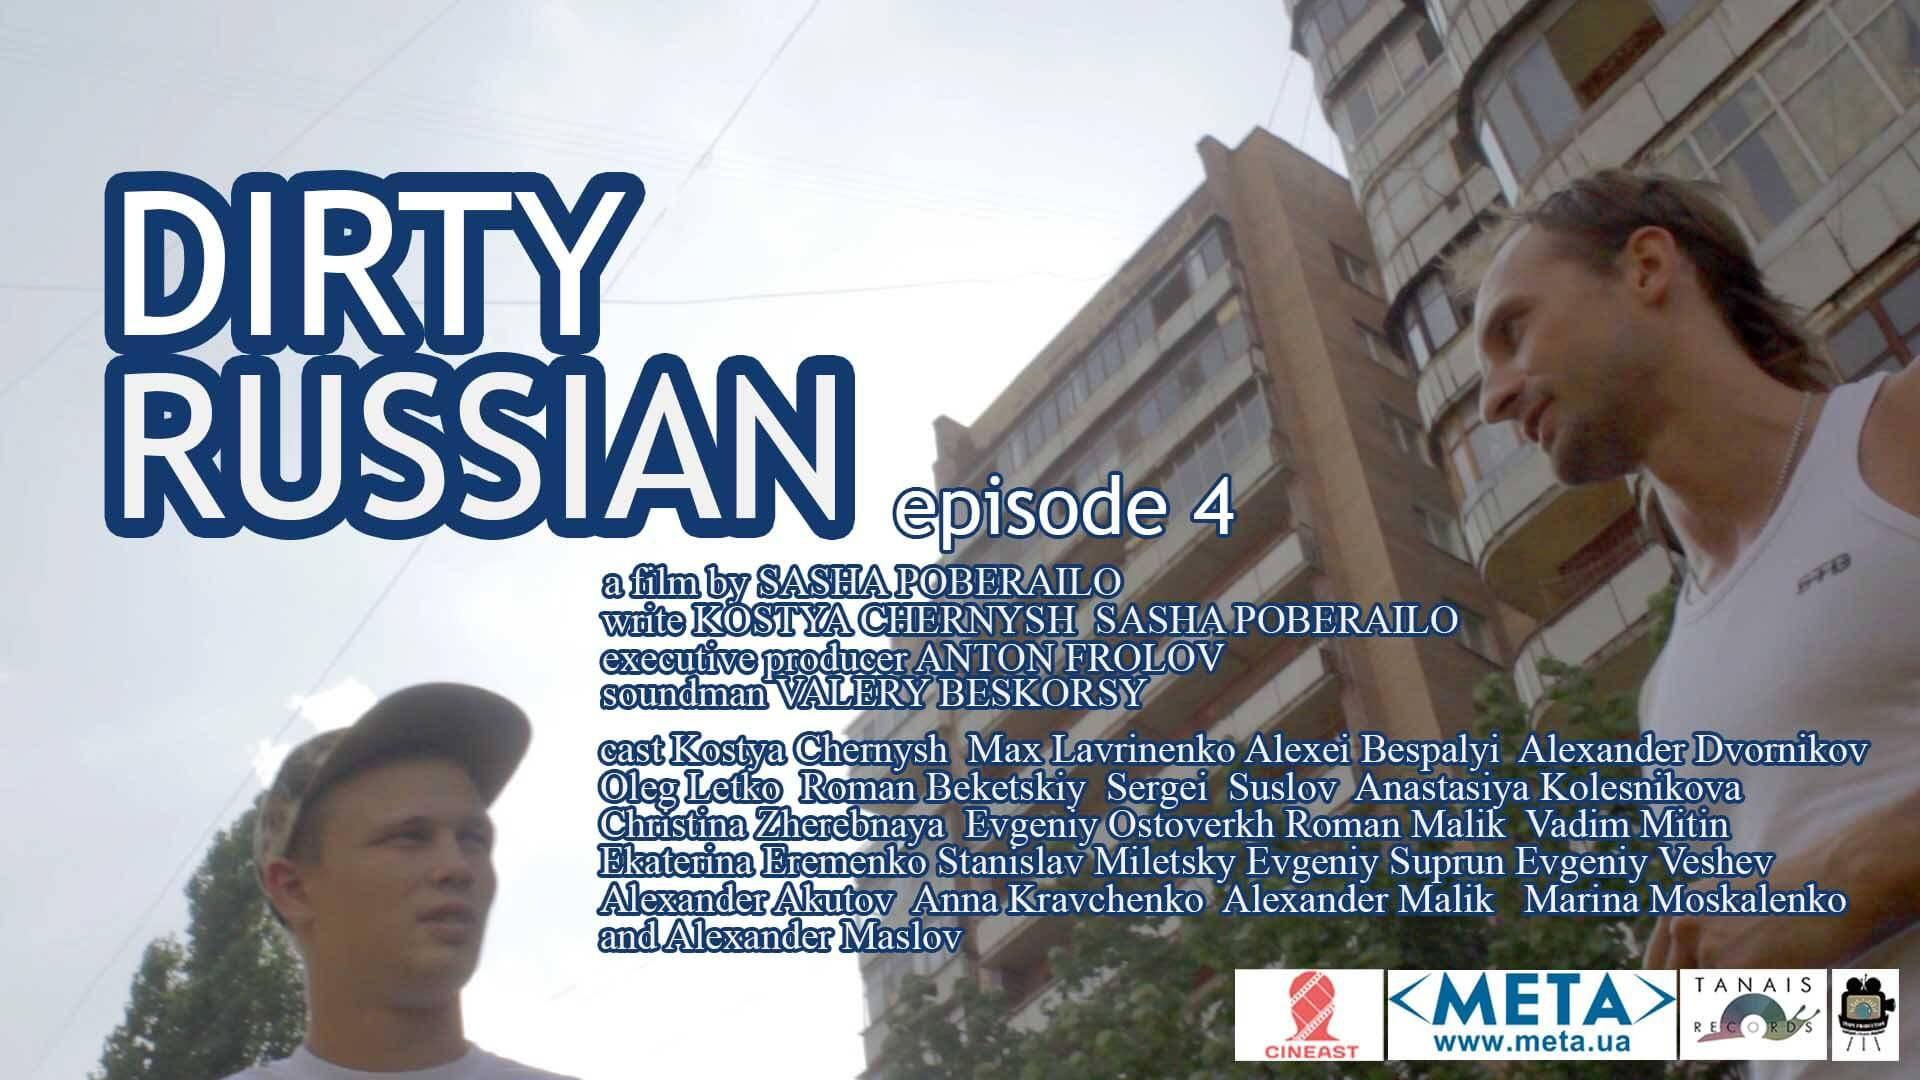 dirty russian episode 4 - cyberpunk